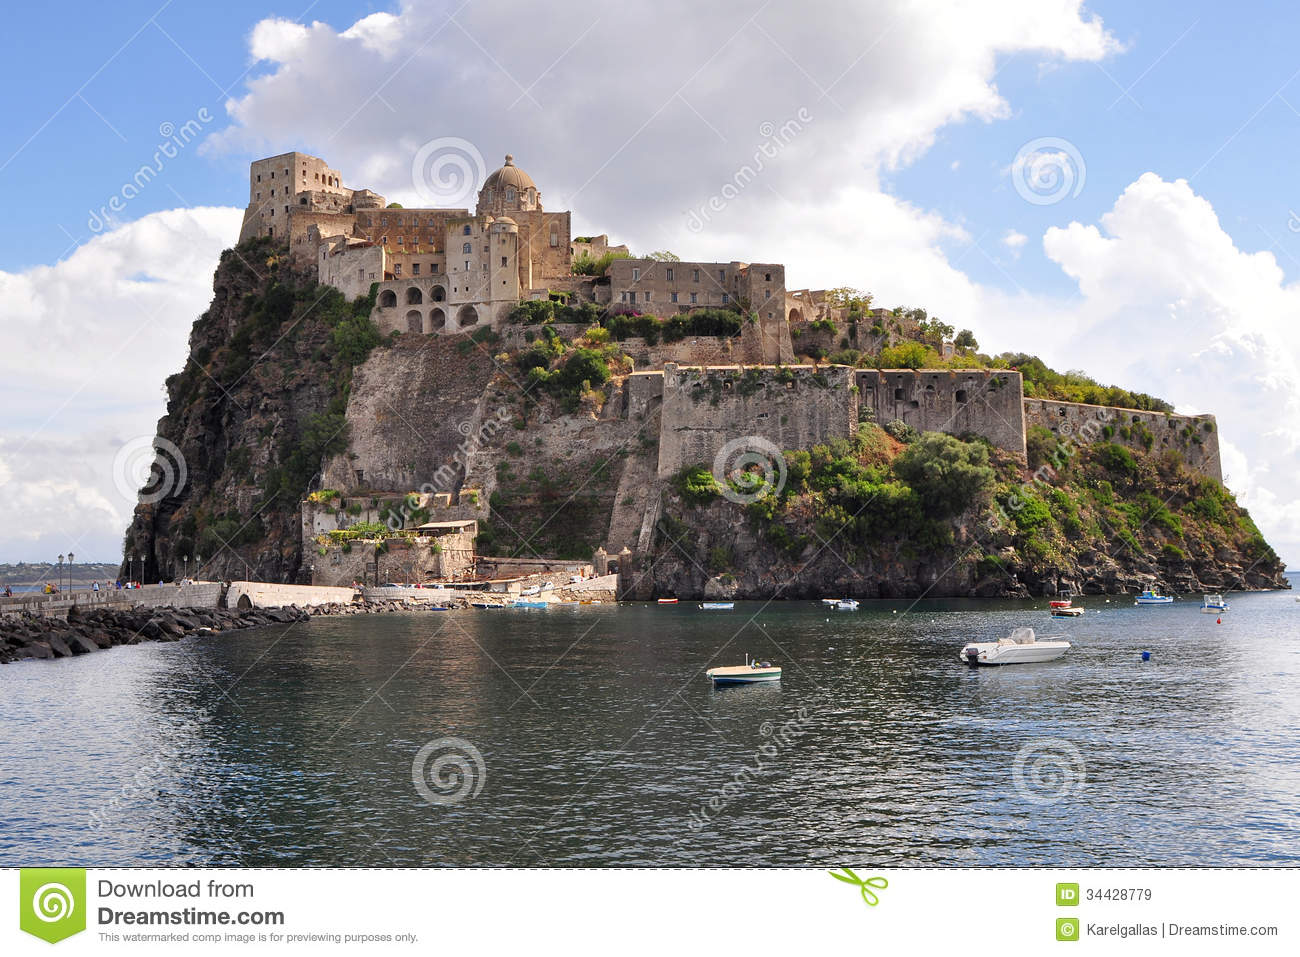 online dating naples italy Naples city breaks naples is a window into italy at its most authentic daily life plays out against a stunning setting,  dating back to the 12th century, .